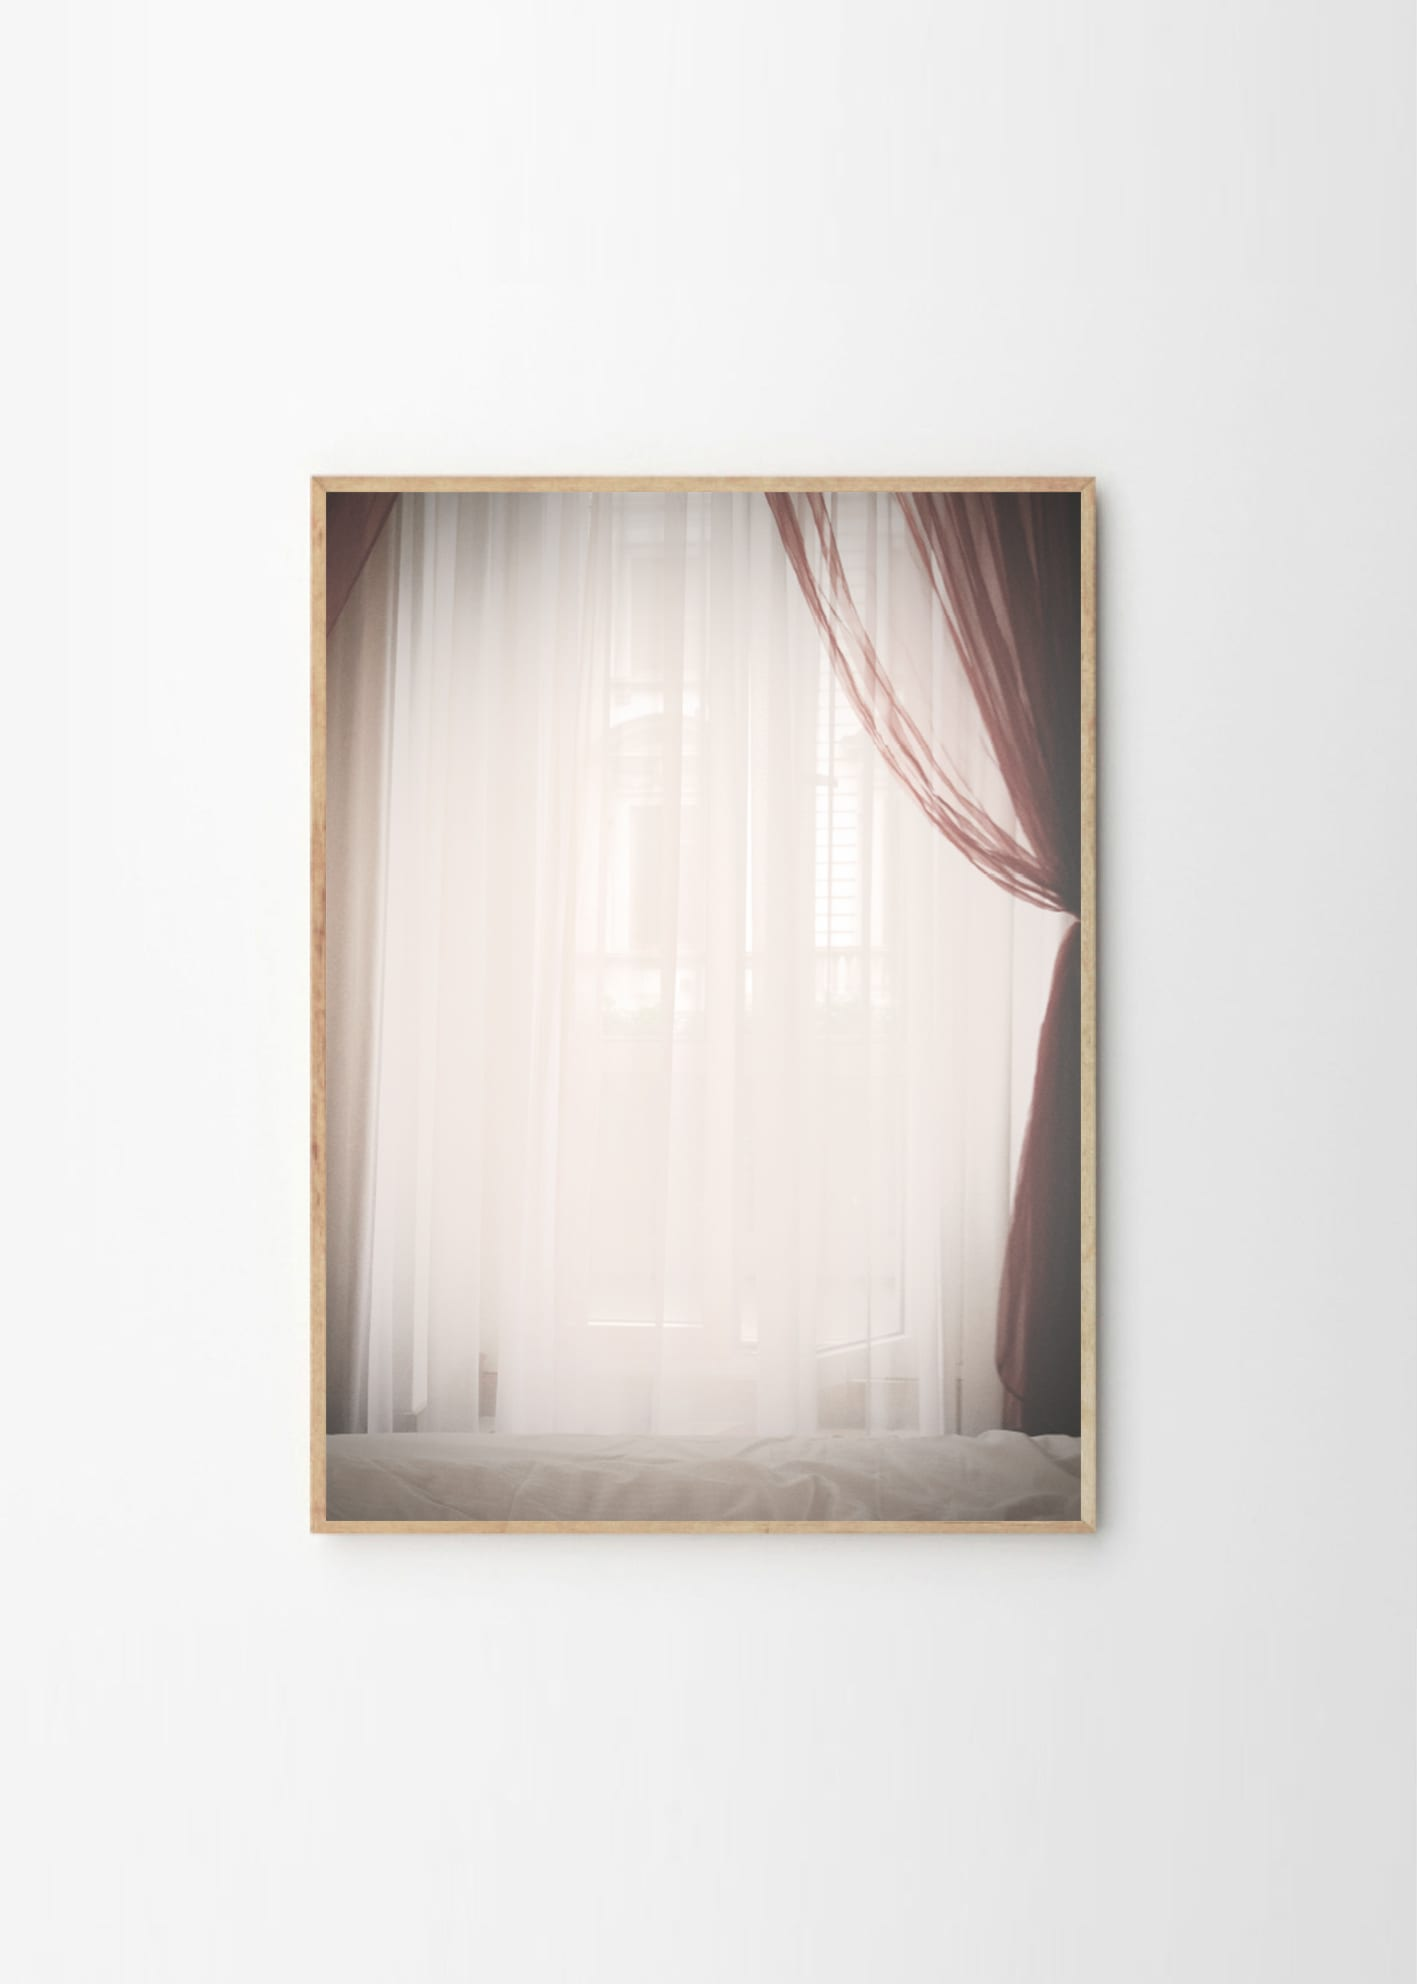 Paper Collective - Pia Winther, Still life 03